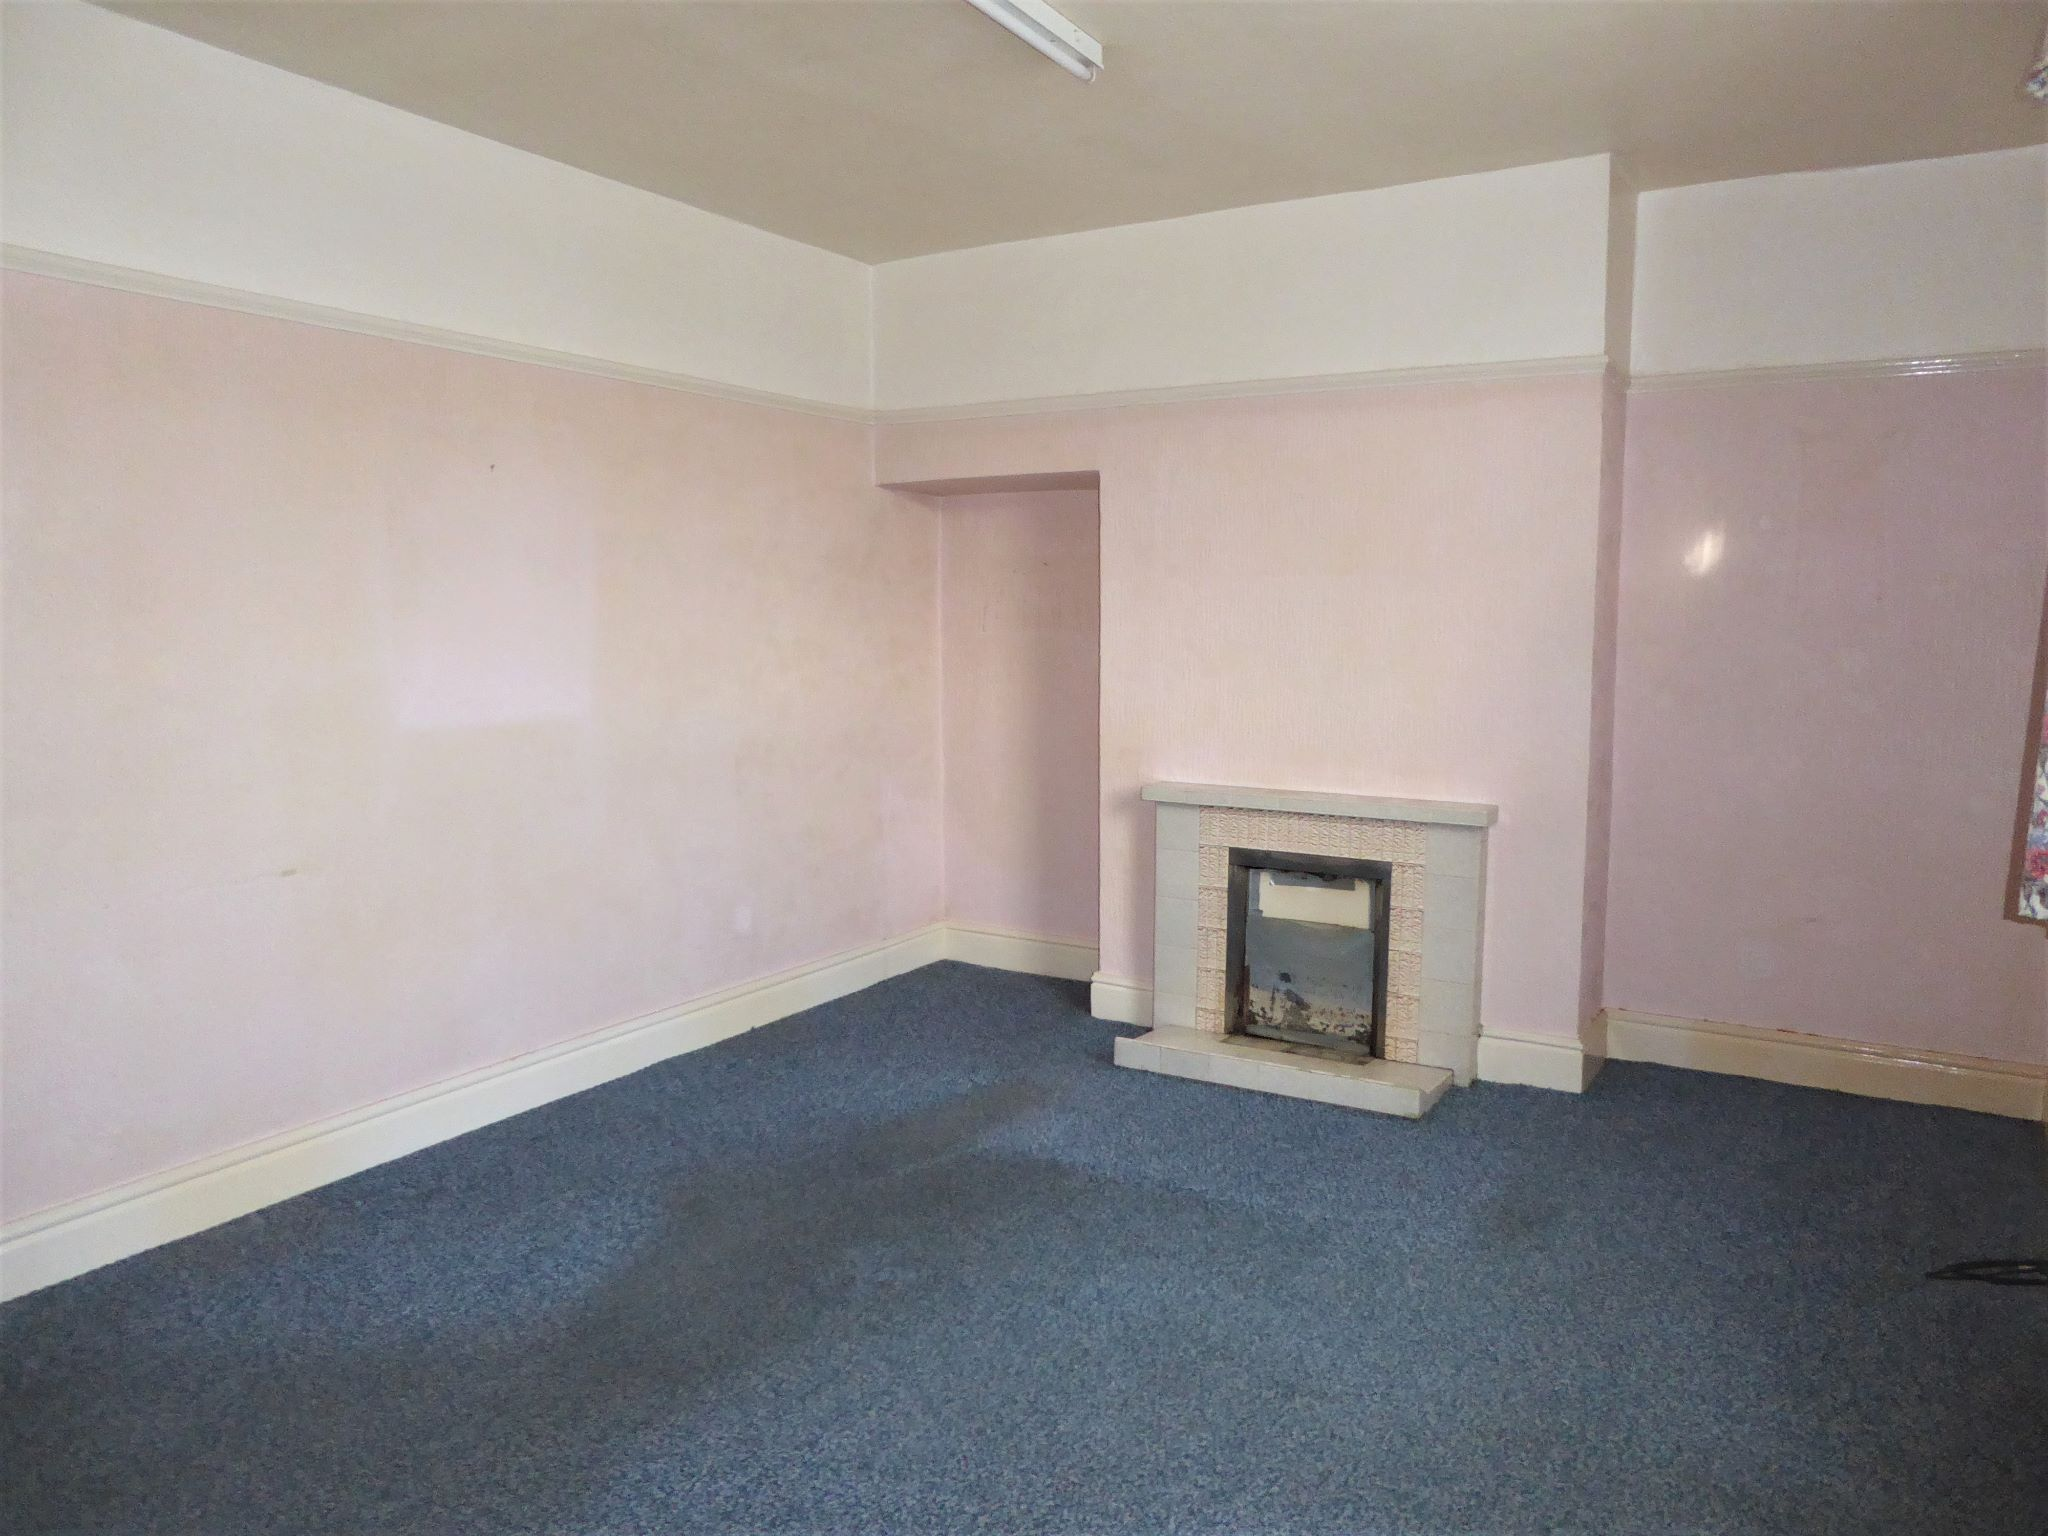 3 bedroom end terraced house SSTC in Abergele - Photograph 5